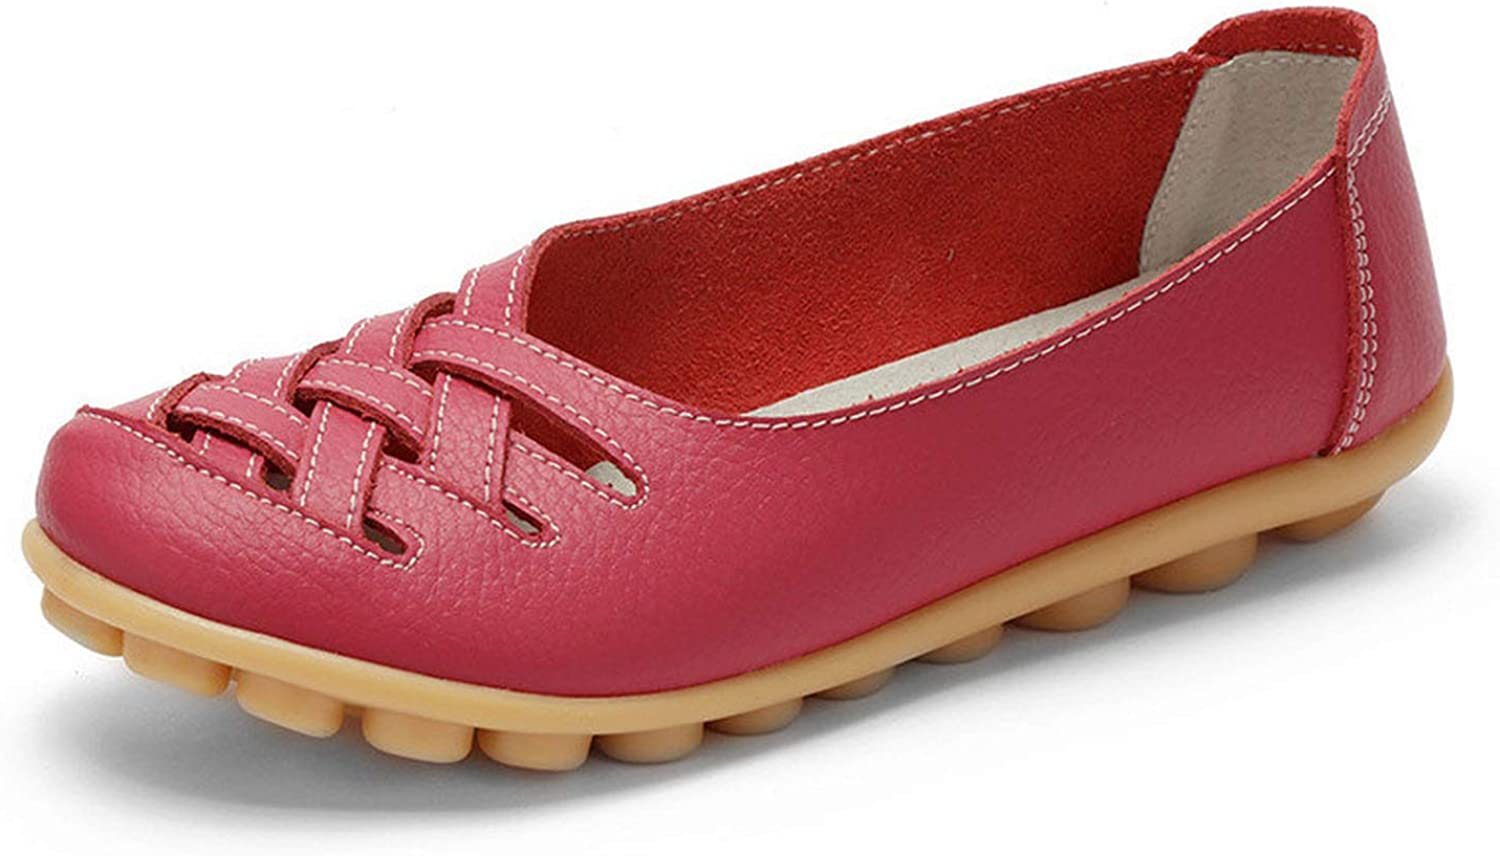 Don't mention the past New Women's Casual shoes Genuine Leather Woman Loafers Slip On Female Flats Ladies Driving shoes,pinkred,9